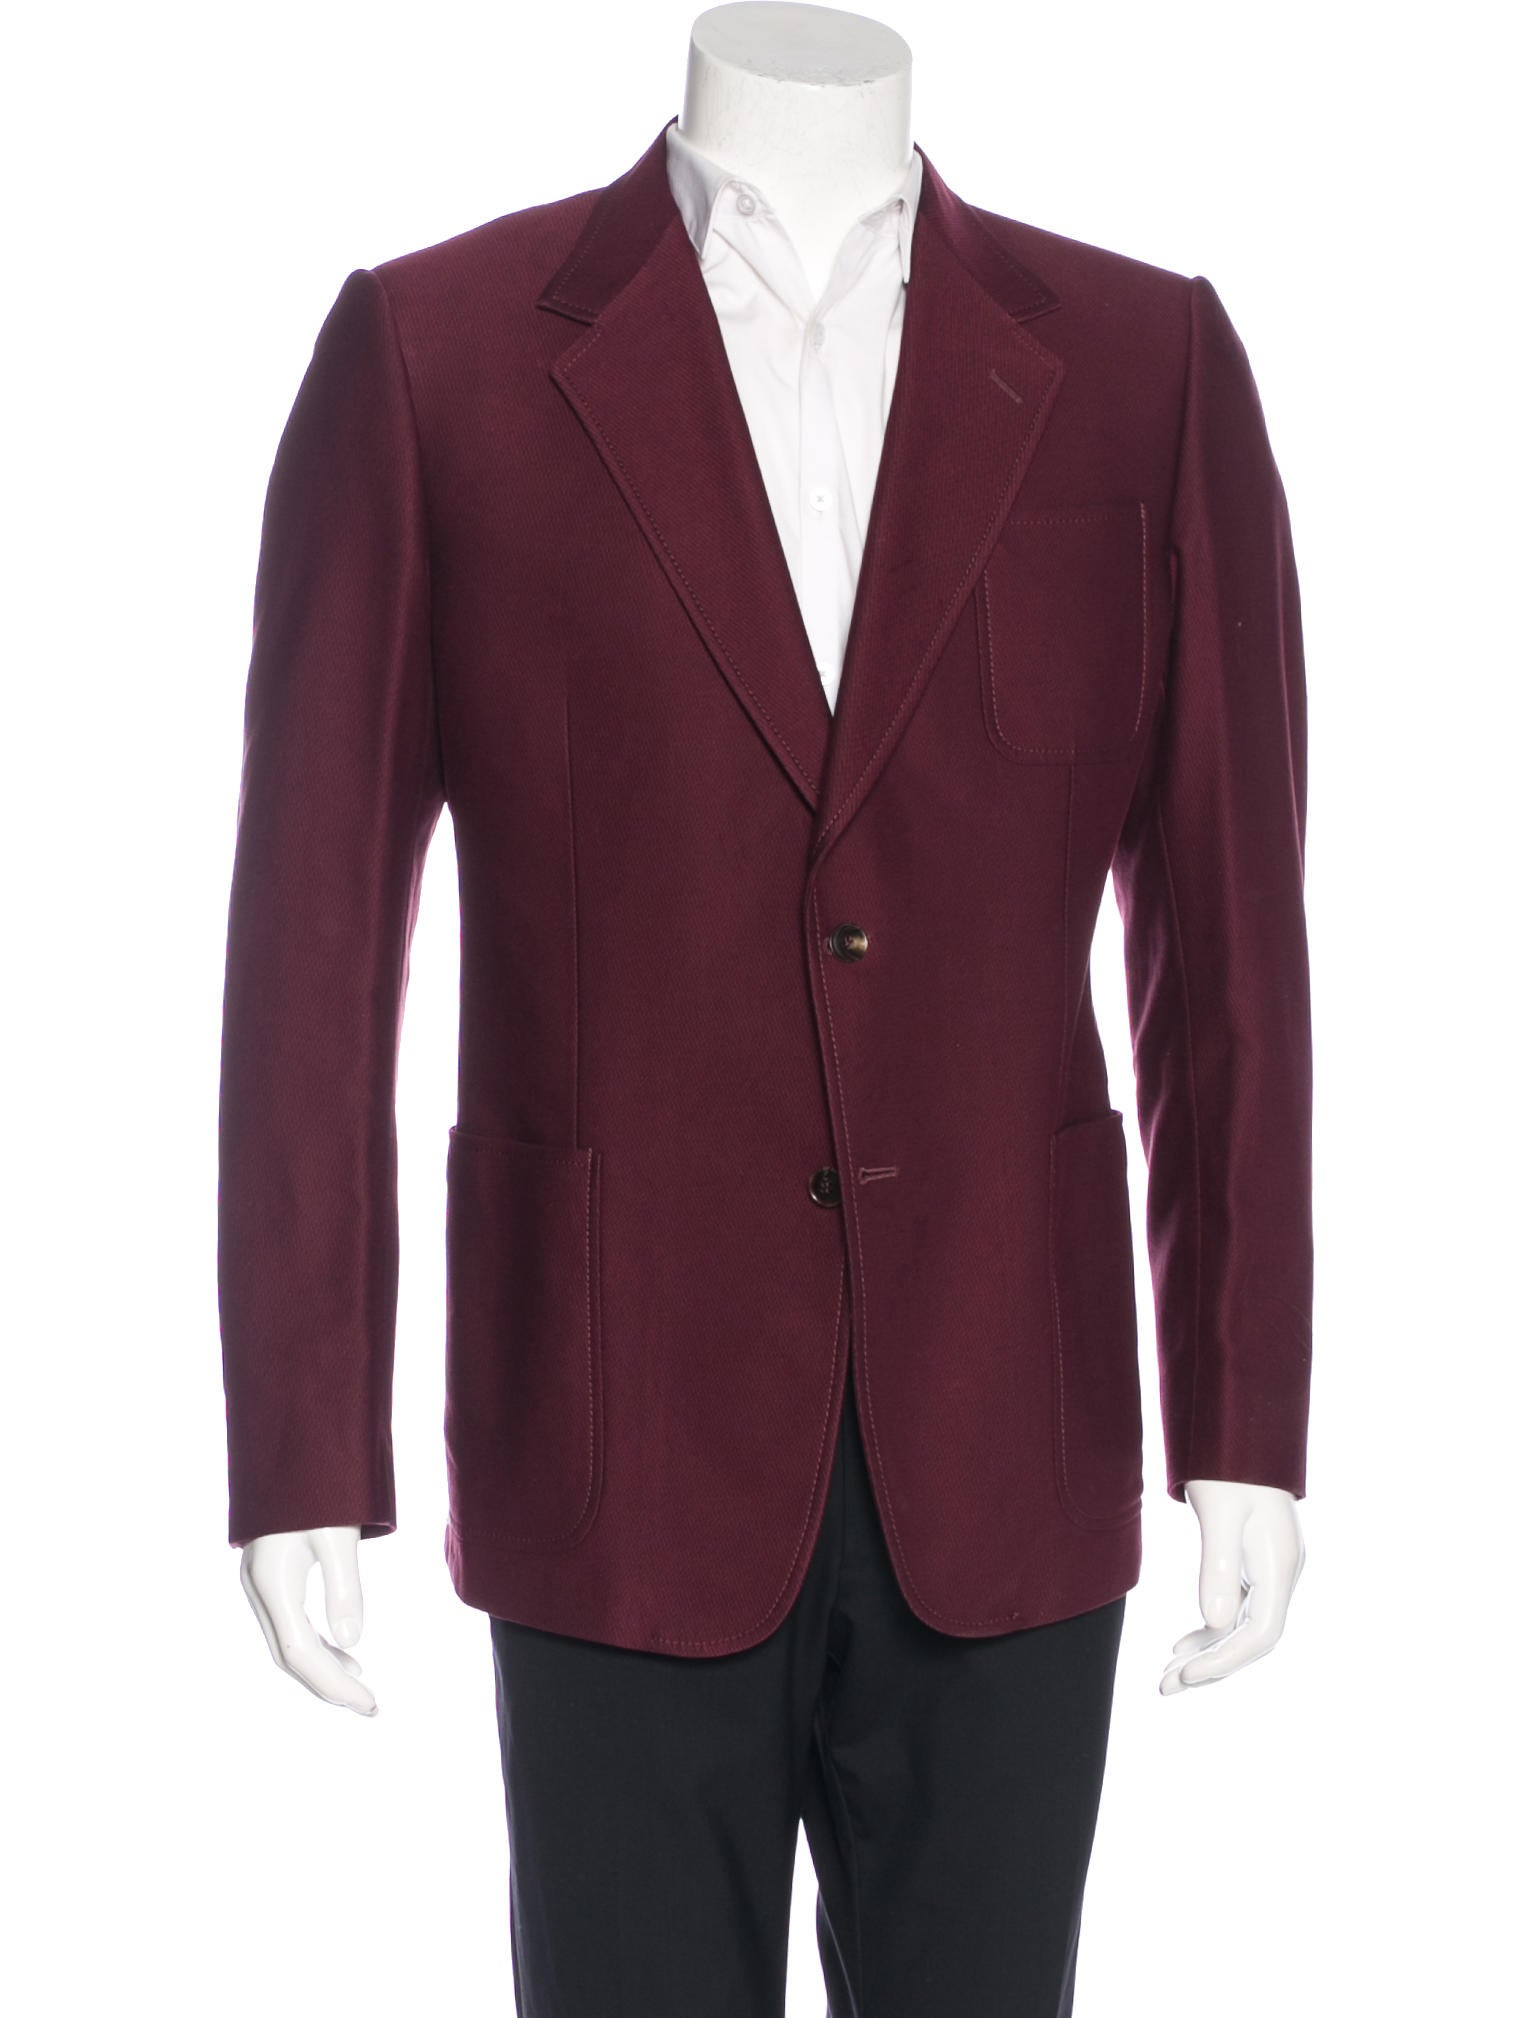 Gucci Two-Button Sport Coat - Clothing - GUC157758 | The RealReal